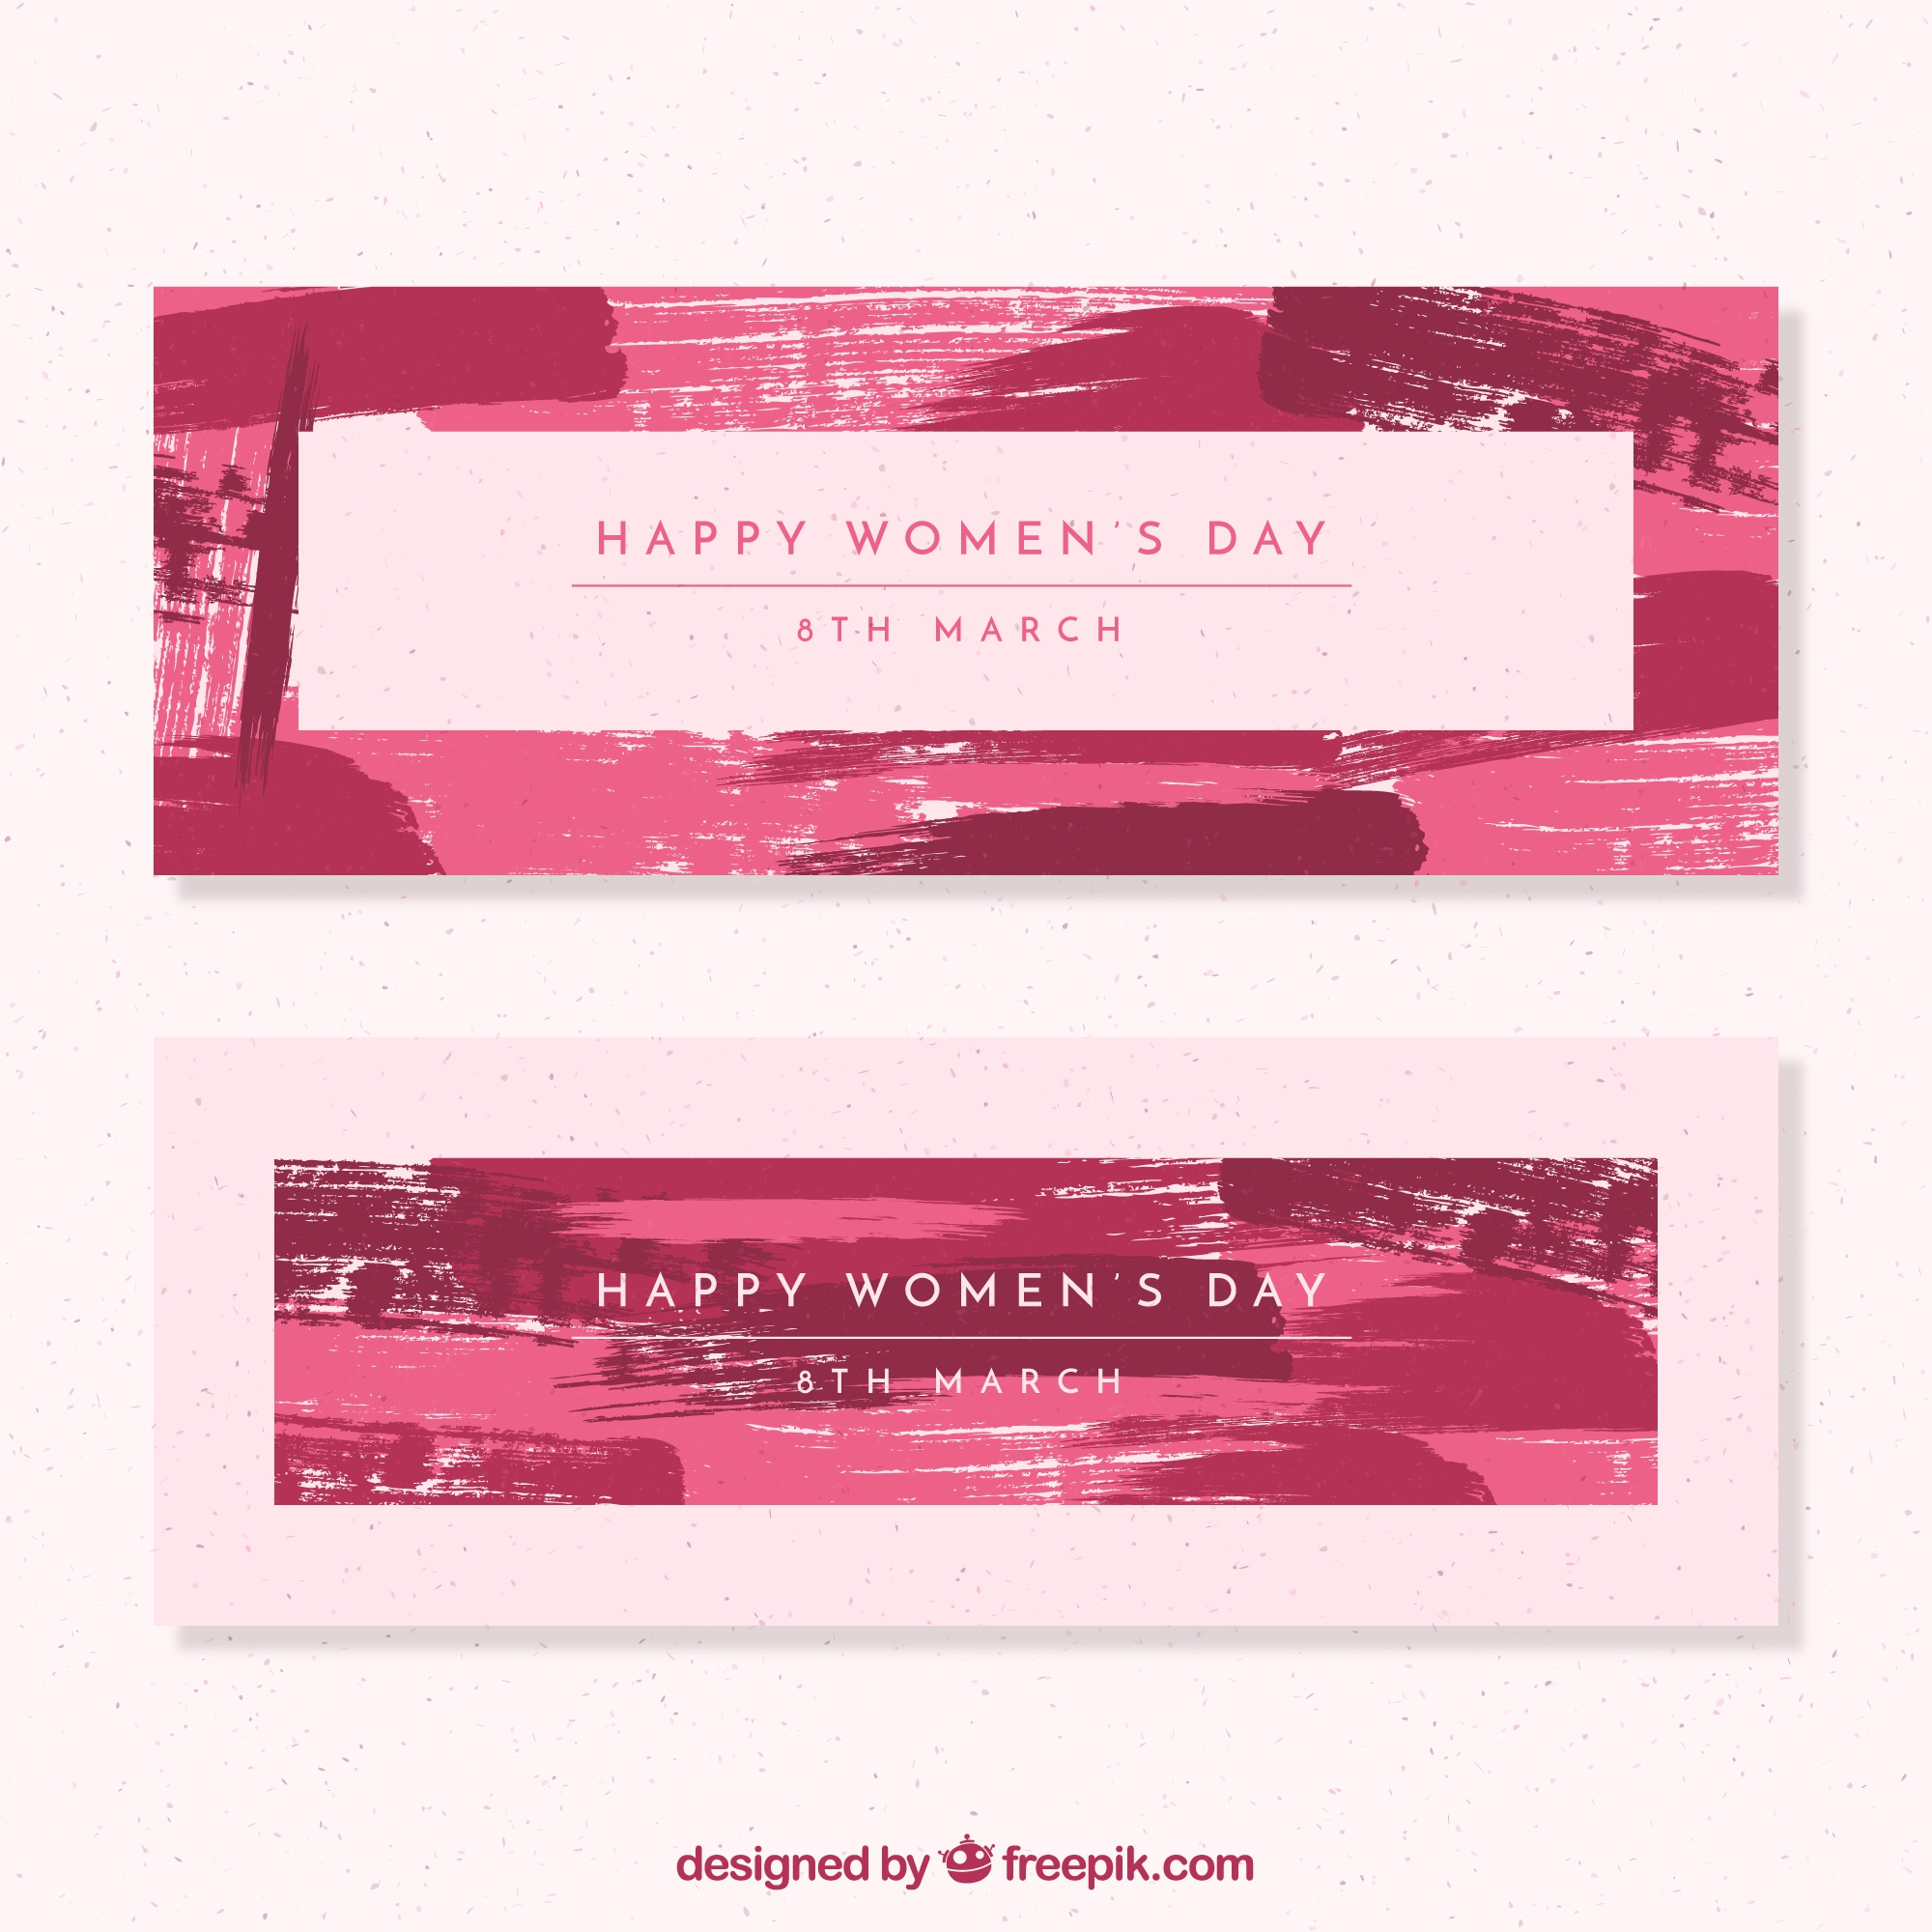 Happy woman's day banners with brush strokes